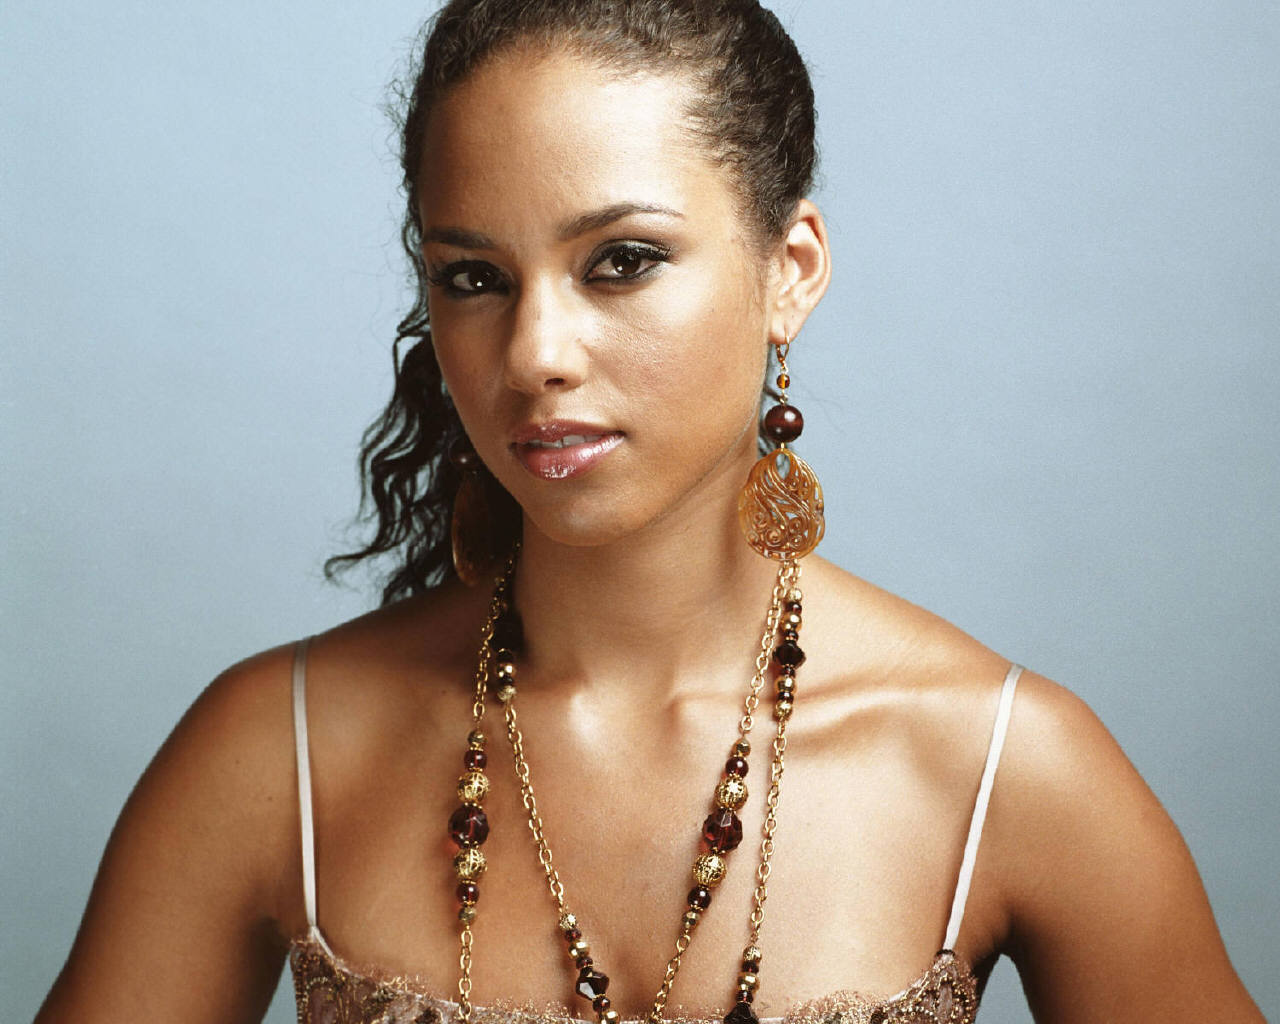 alicia keys1 300x240 BlackBerry Just Hired Alicia Keys to Do What?